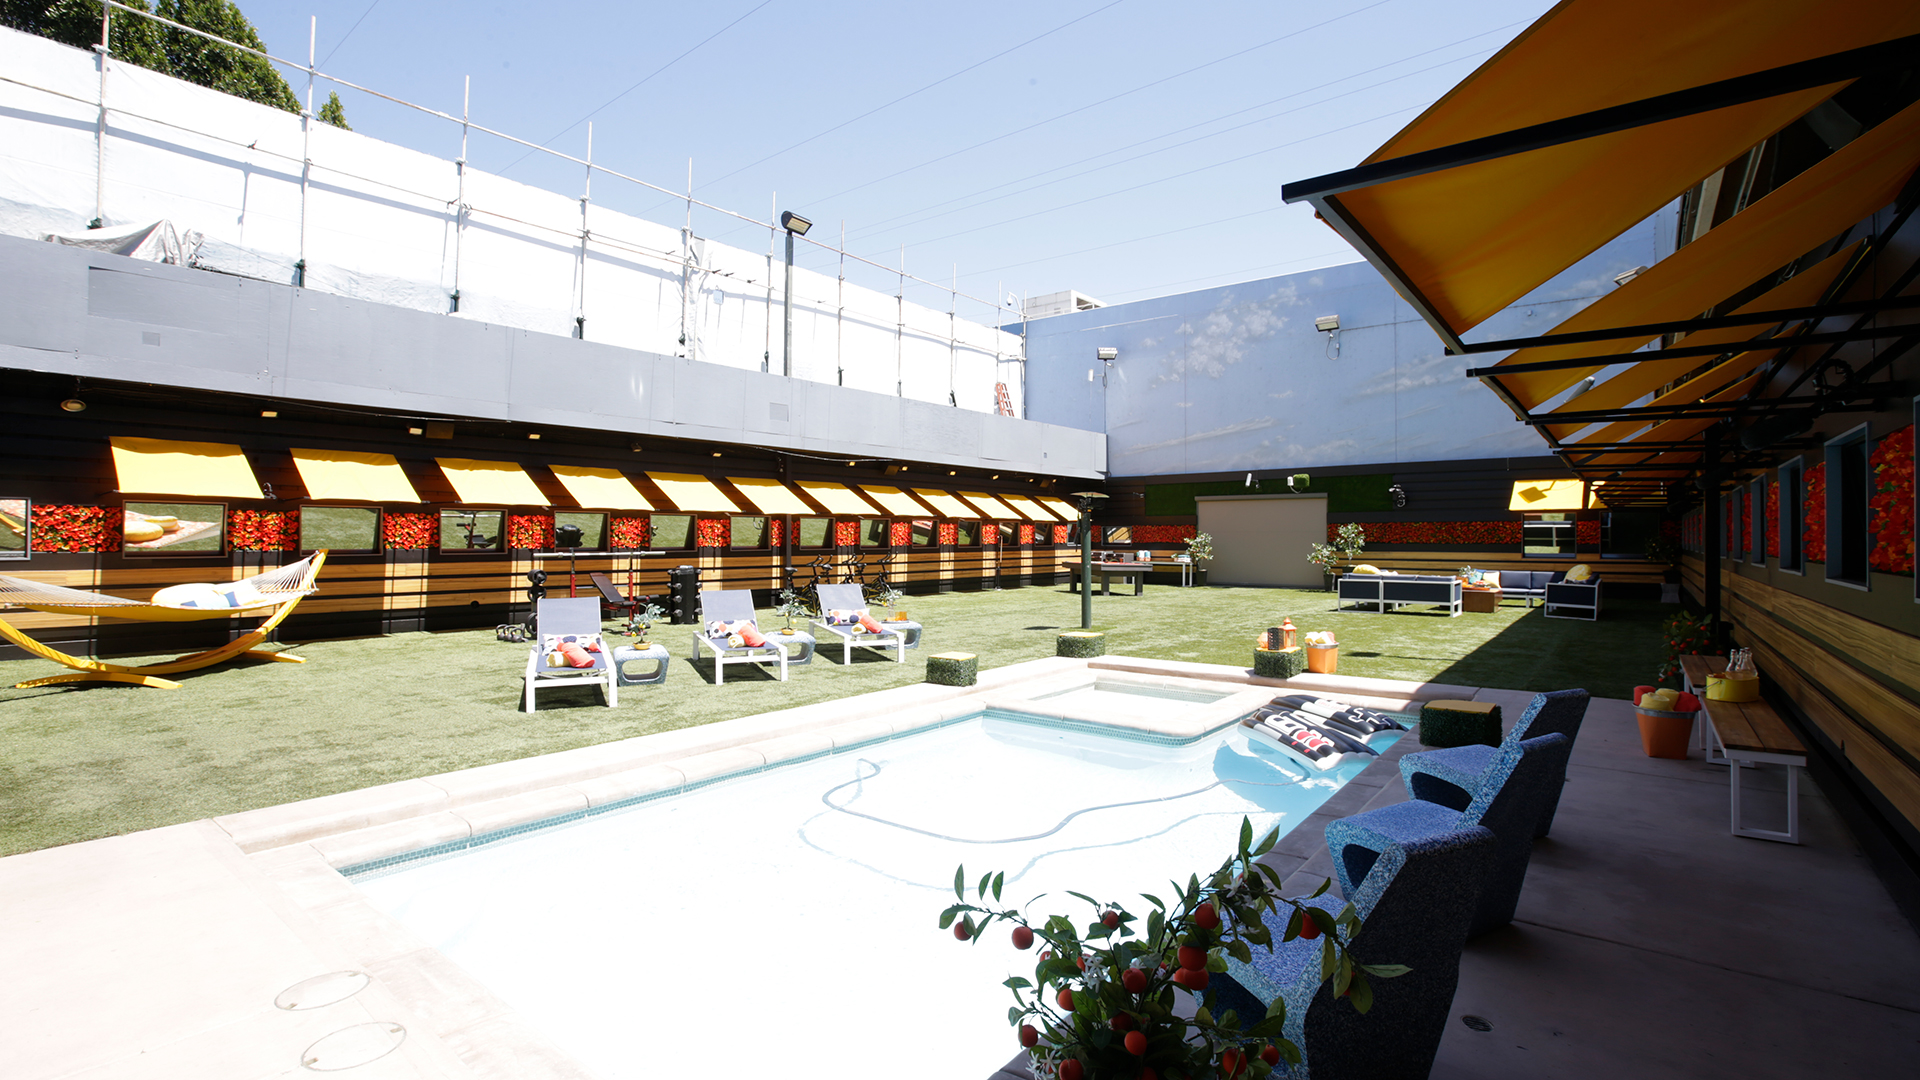 The yard is outfitted with a new pool table and the trademark pool and spa made for a summer of scheming.